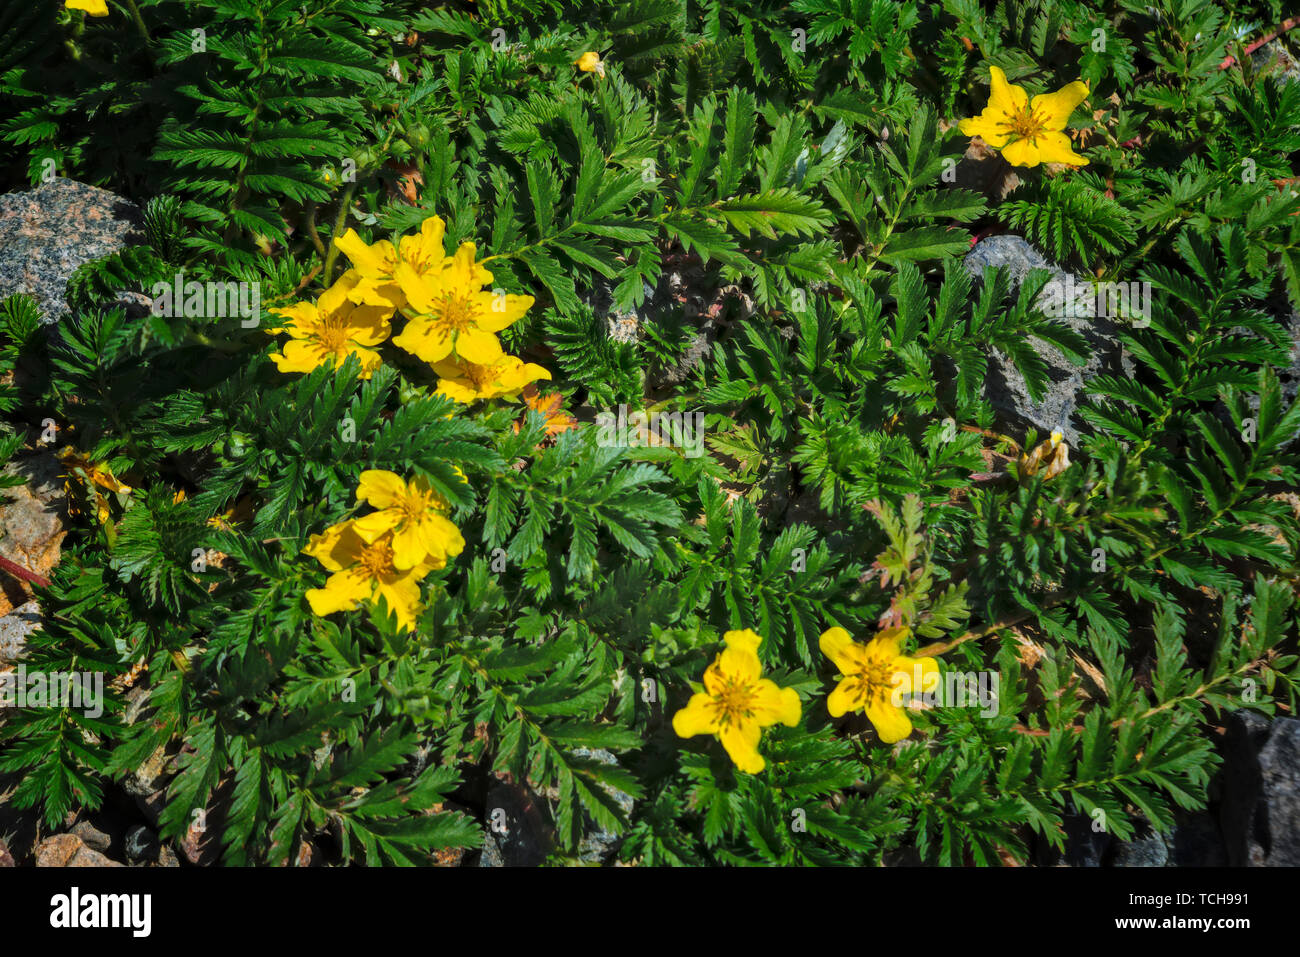 Argentina anserina or Potentilla anserina. It is known by the common names silverweed or silverweed cinquefoil. Natural green plant background, yellow - Stock Image